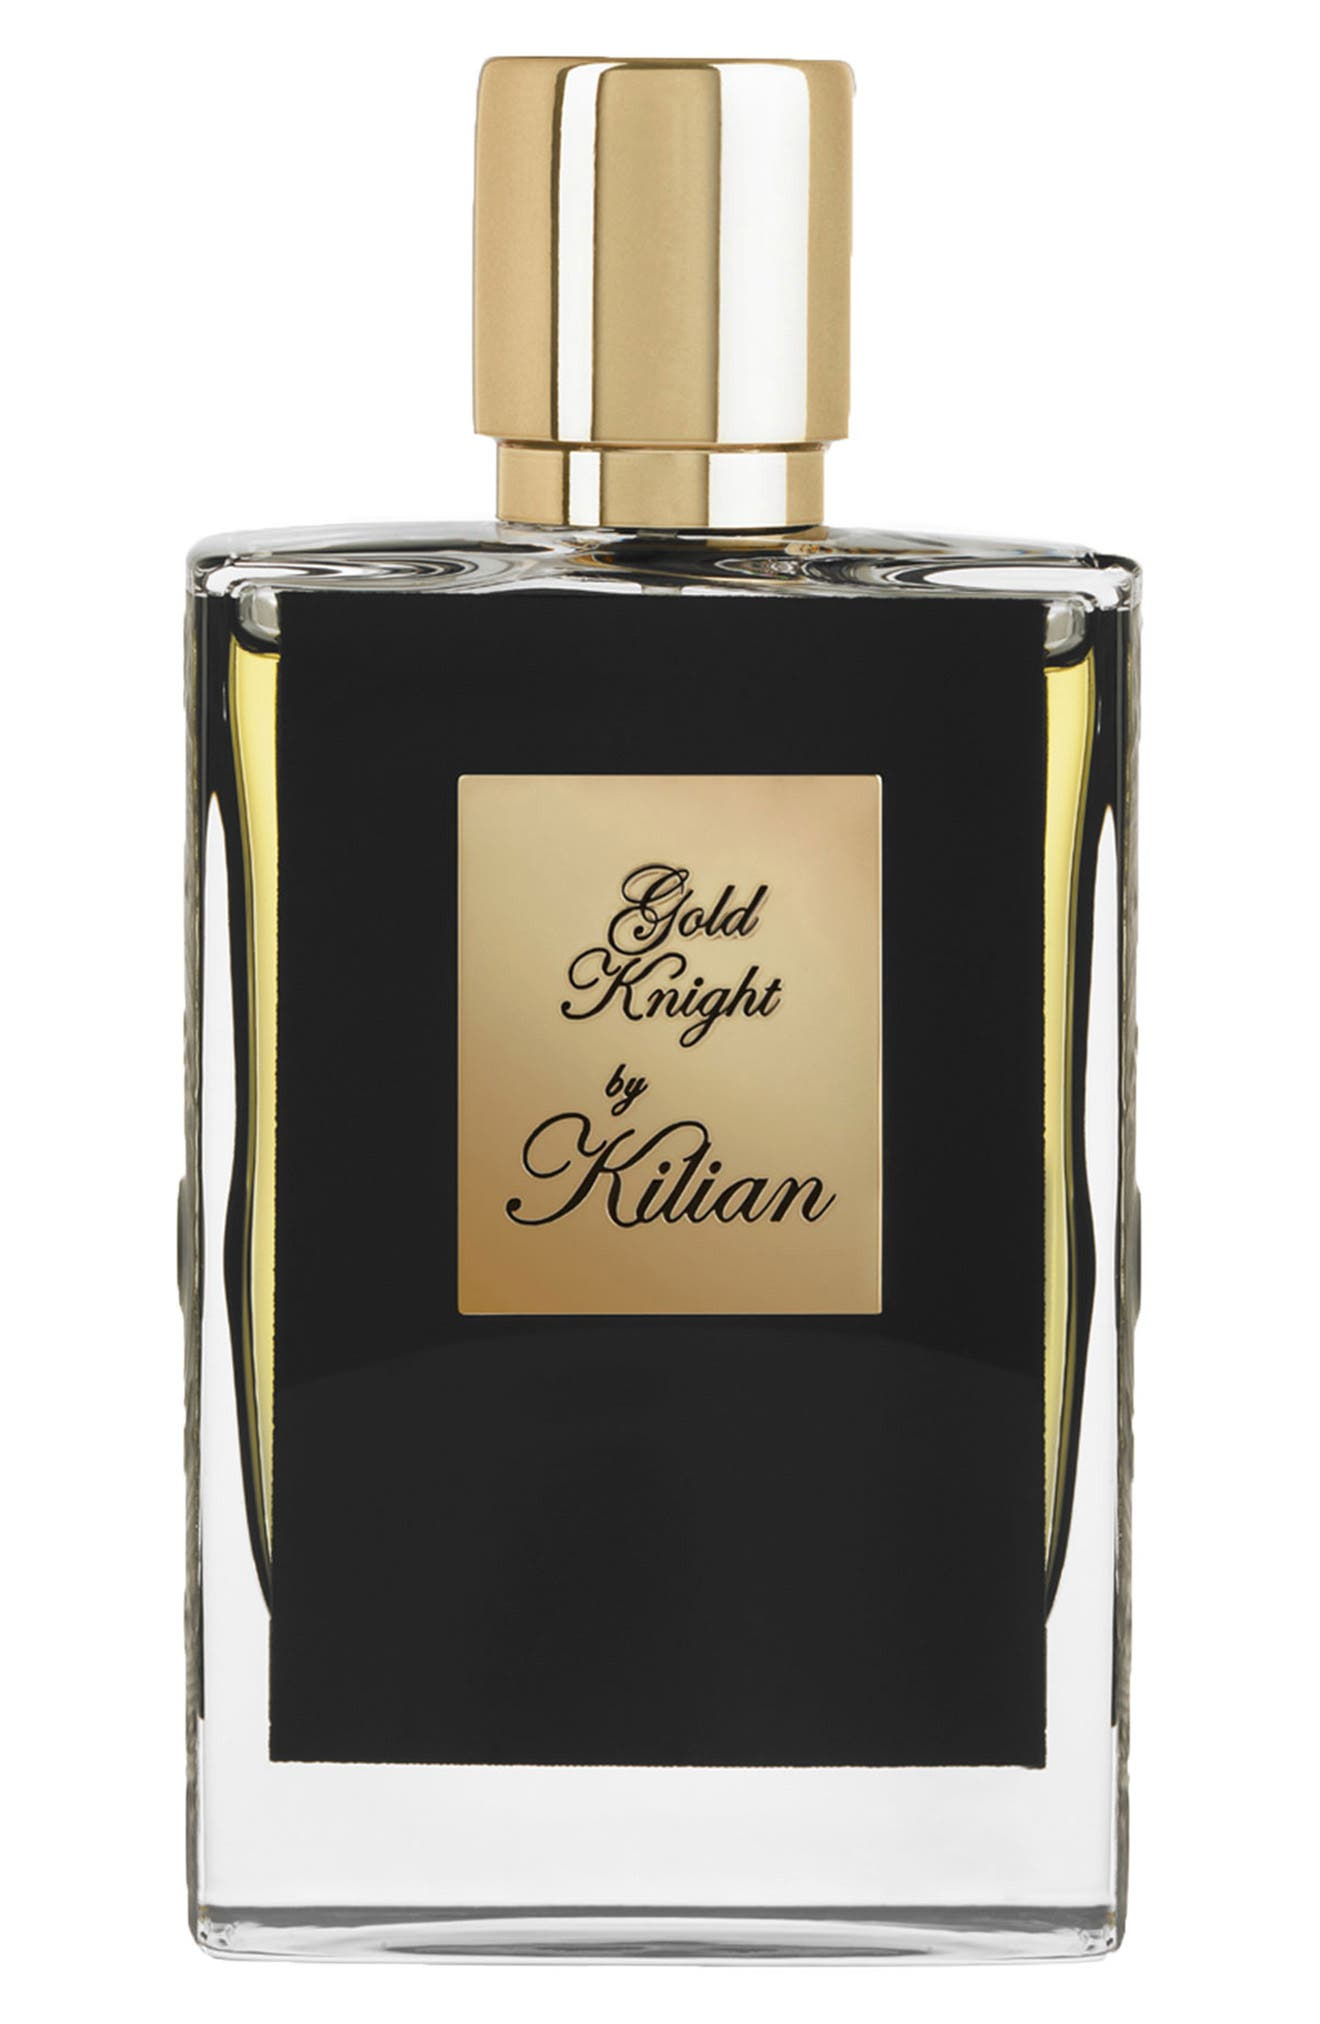 Cellars Gold Knight Refillable Perfume